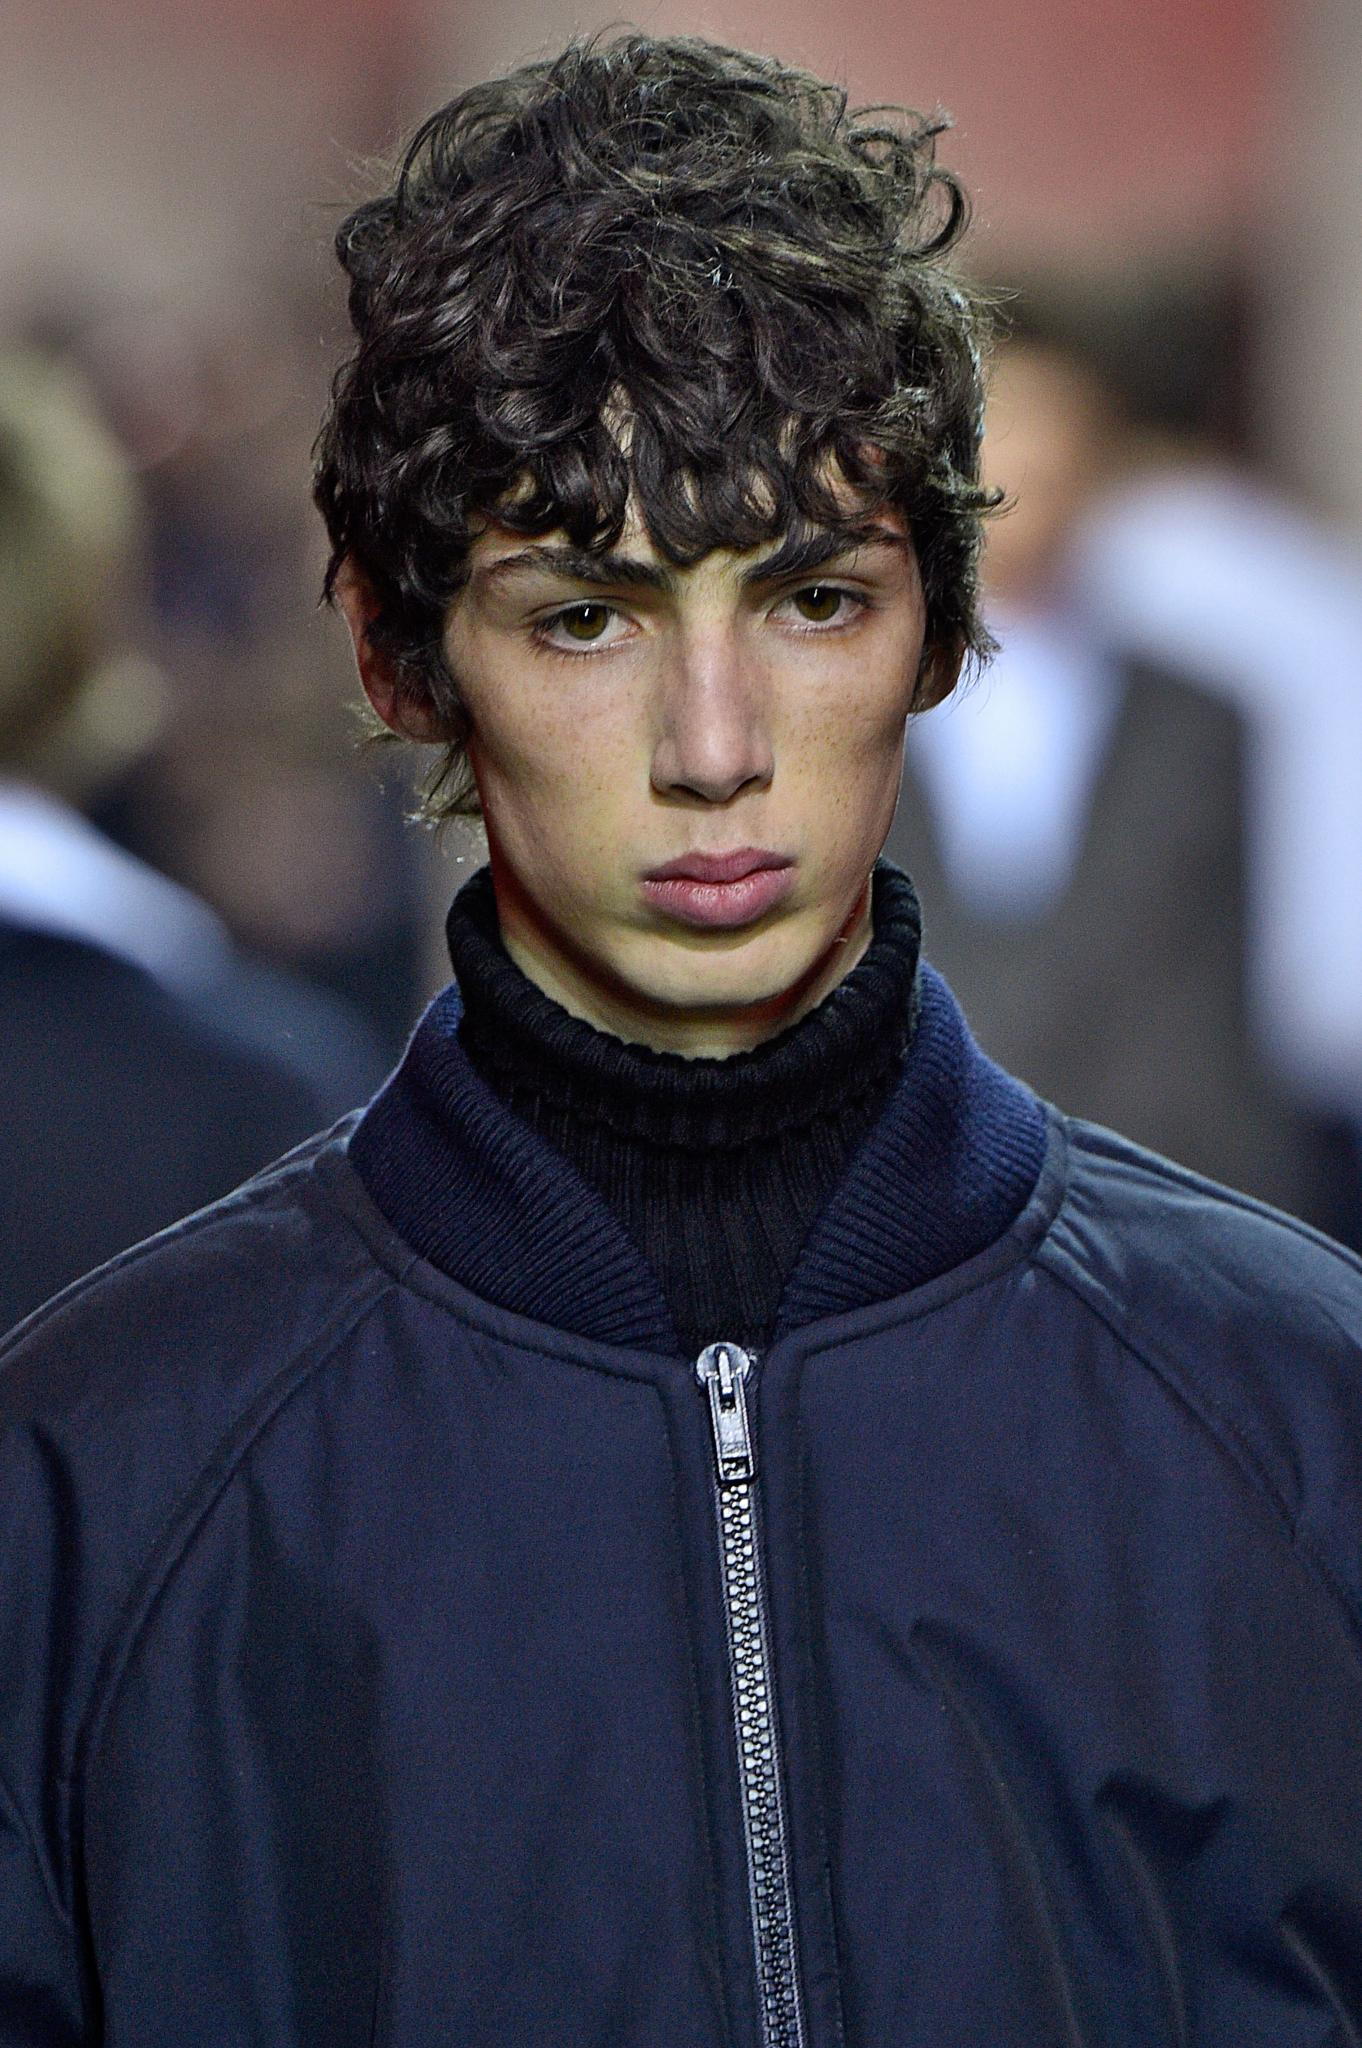 young model with fringe haircuts style on curly hair